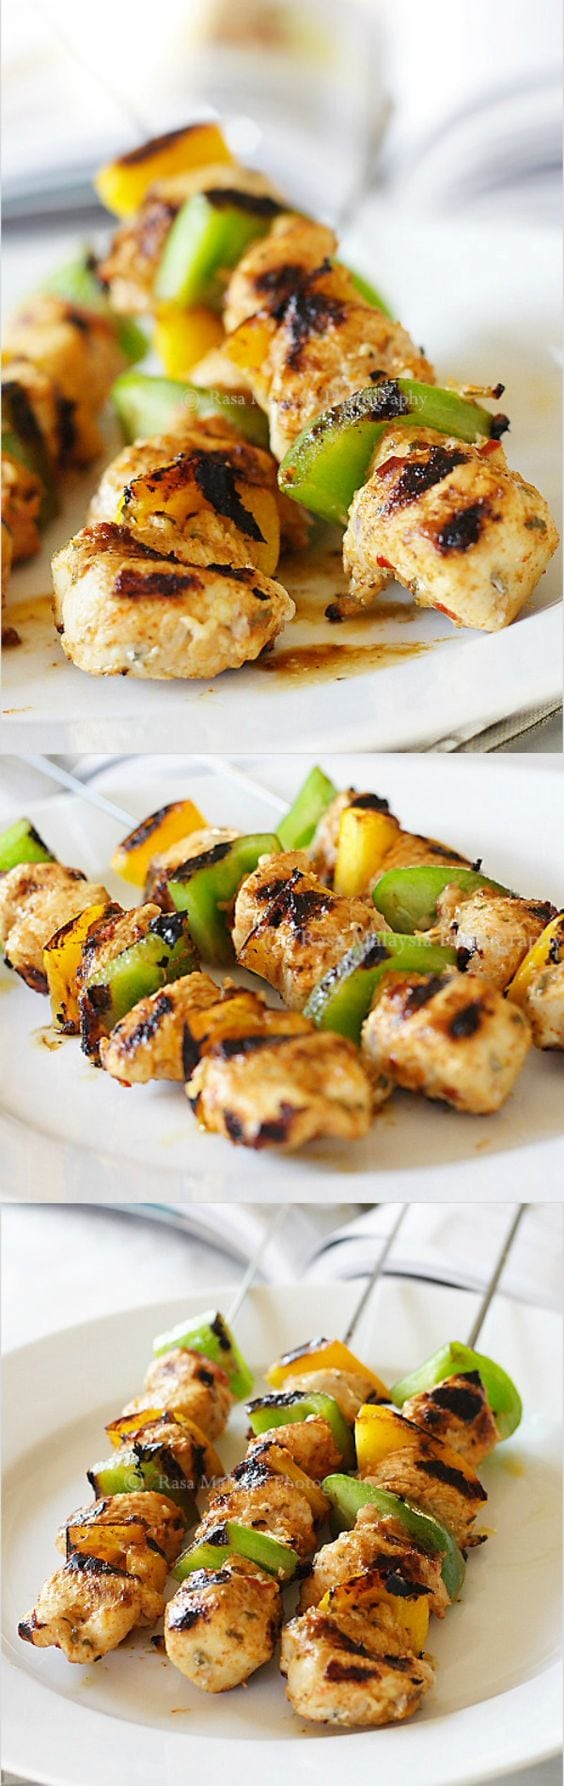 Juicy chicken kebab - marinated with olive oil, lemon juice, cumin and paprika, this chicken kebab is the BEST | rasamalaysia.com